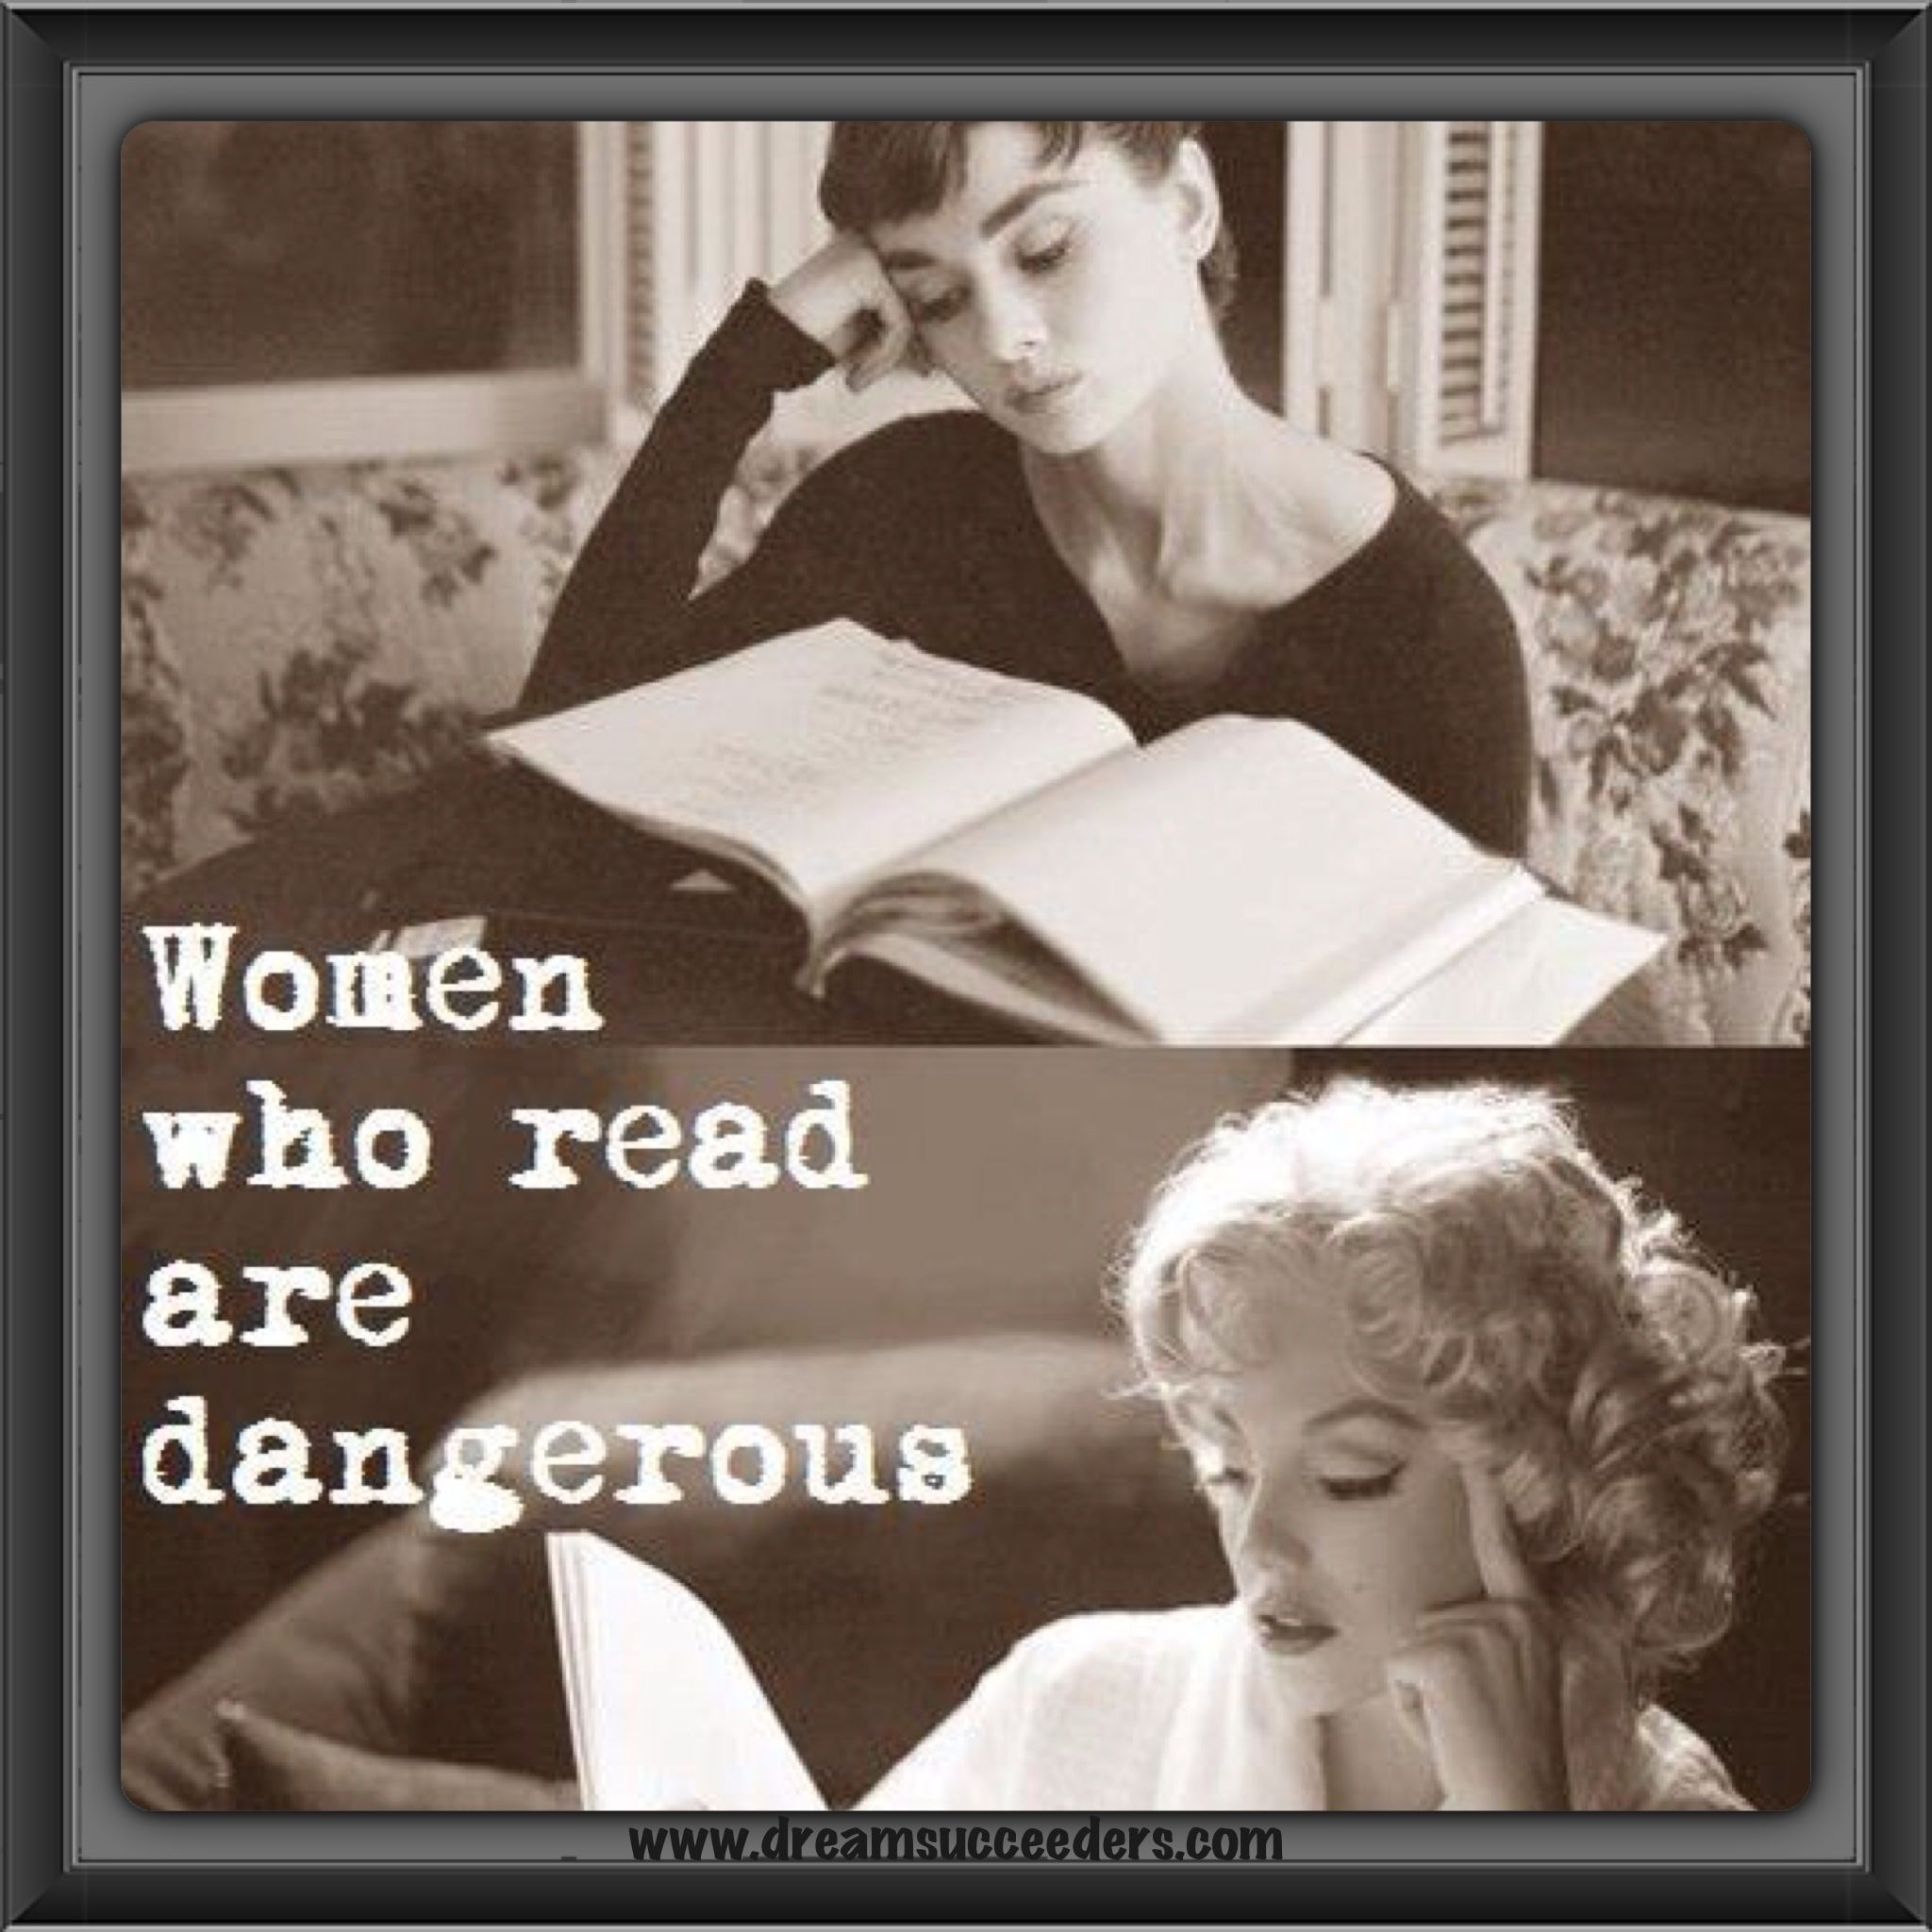 #quotes #womenquotes #reading #marilynmonroe #audreyheburn #blog #mobiledreamers #entrepreneur